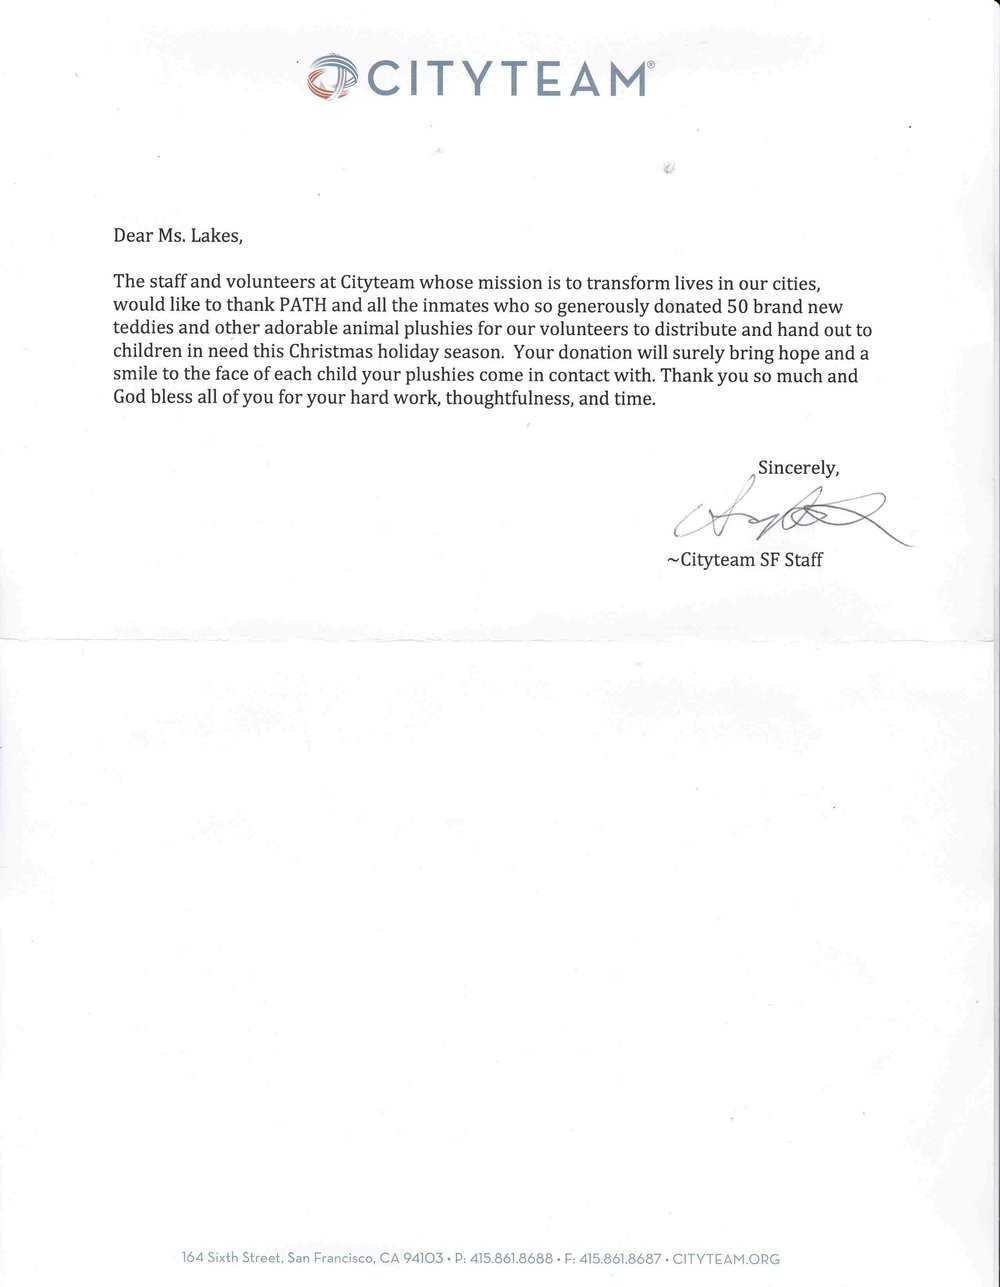 City Team appreciation letter for donation-IMG_20181219_0001.jpg